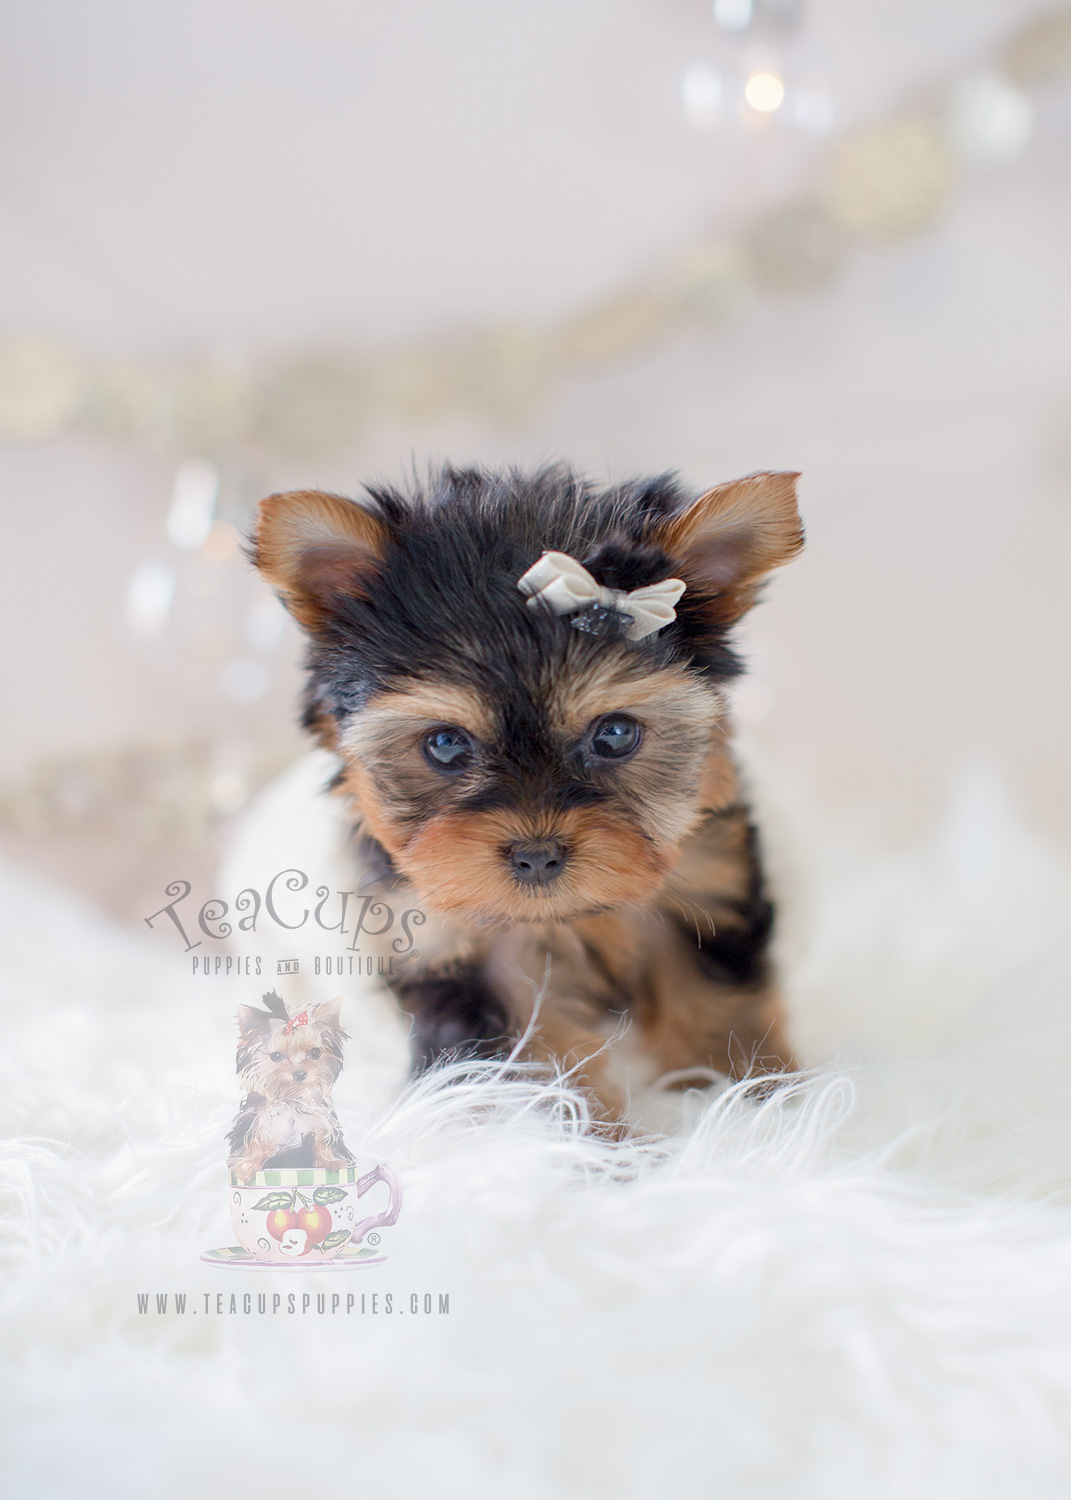 Puppy For Sale #298 Teacup Puppies Tiny Yorkie